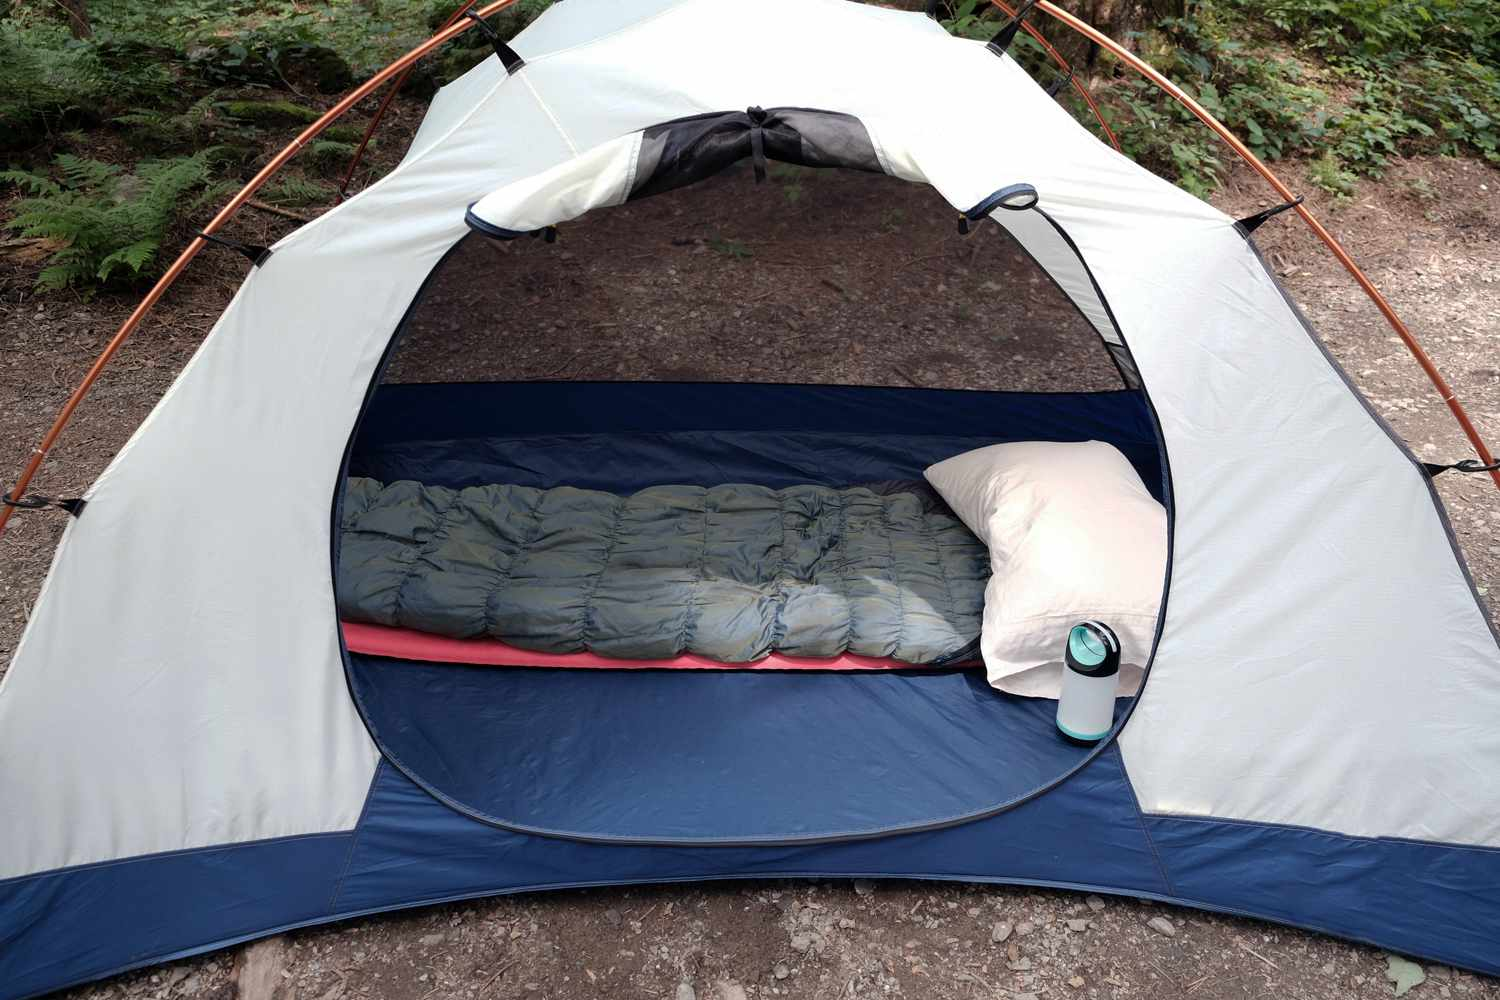 inside of camping tent shows sleeping pad, sleeping bag and pillow